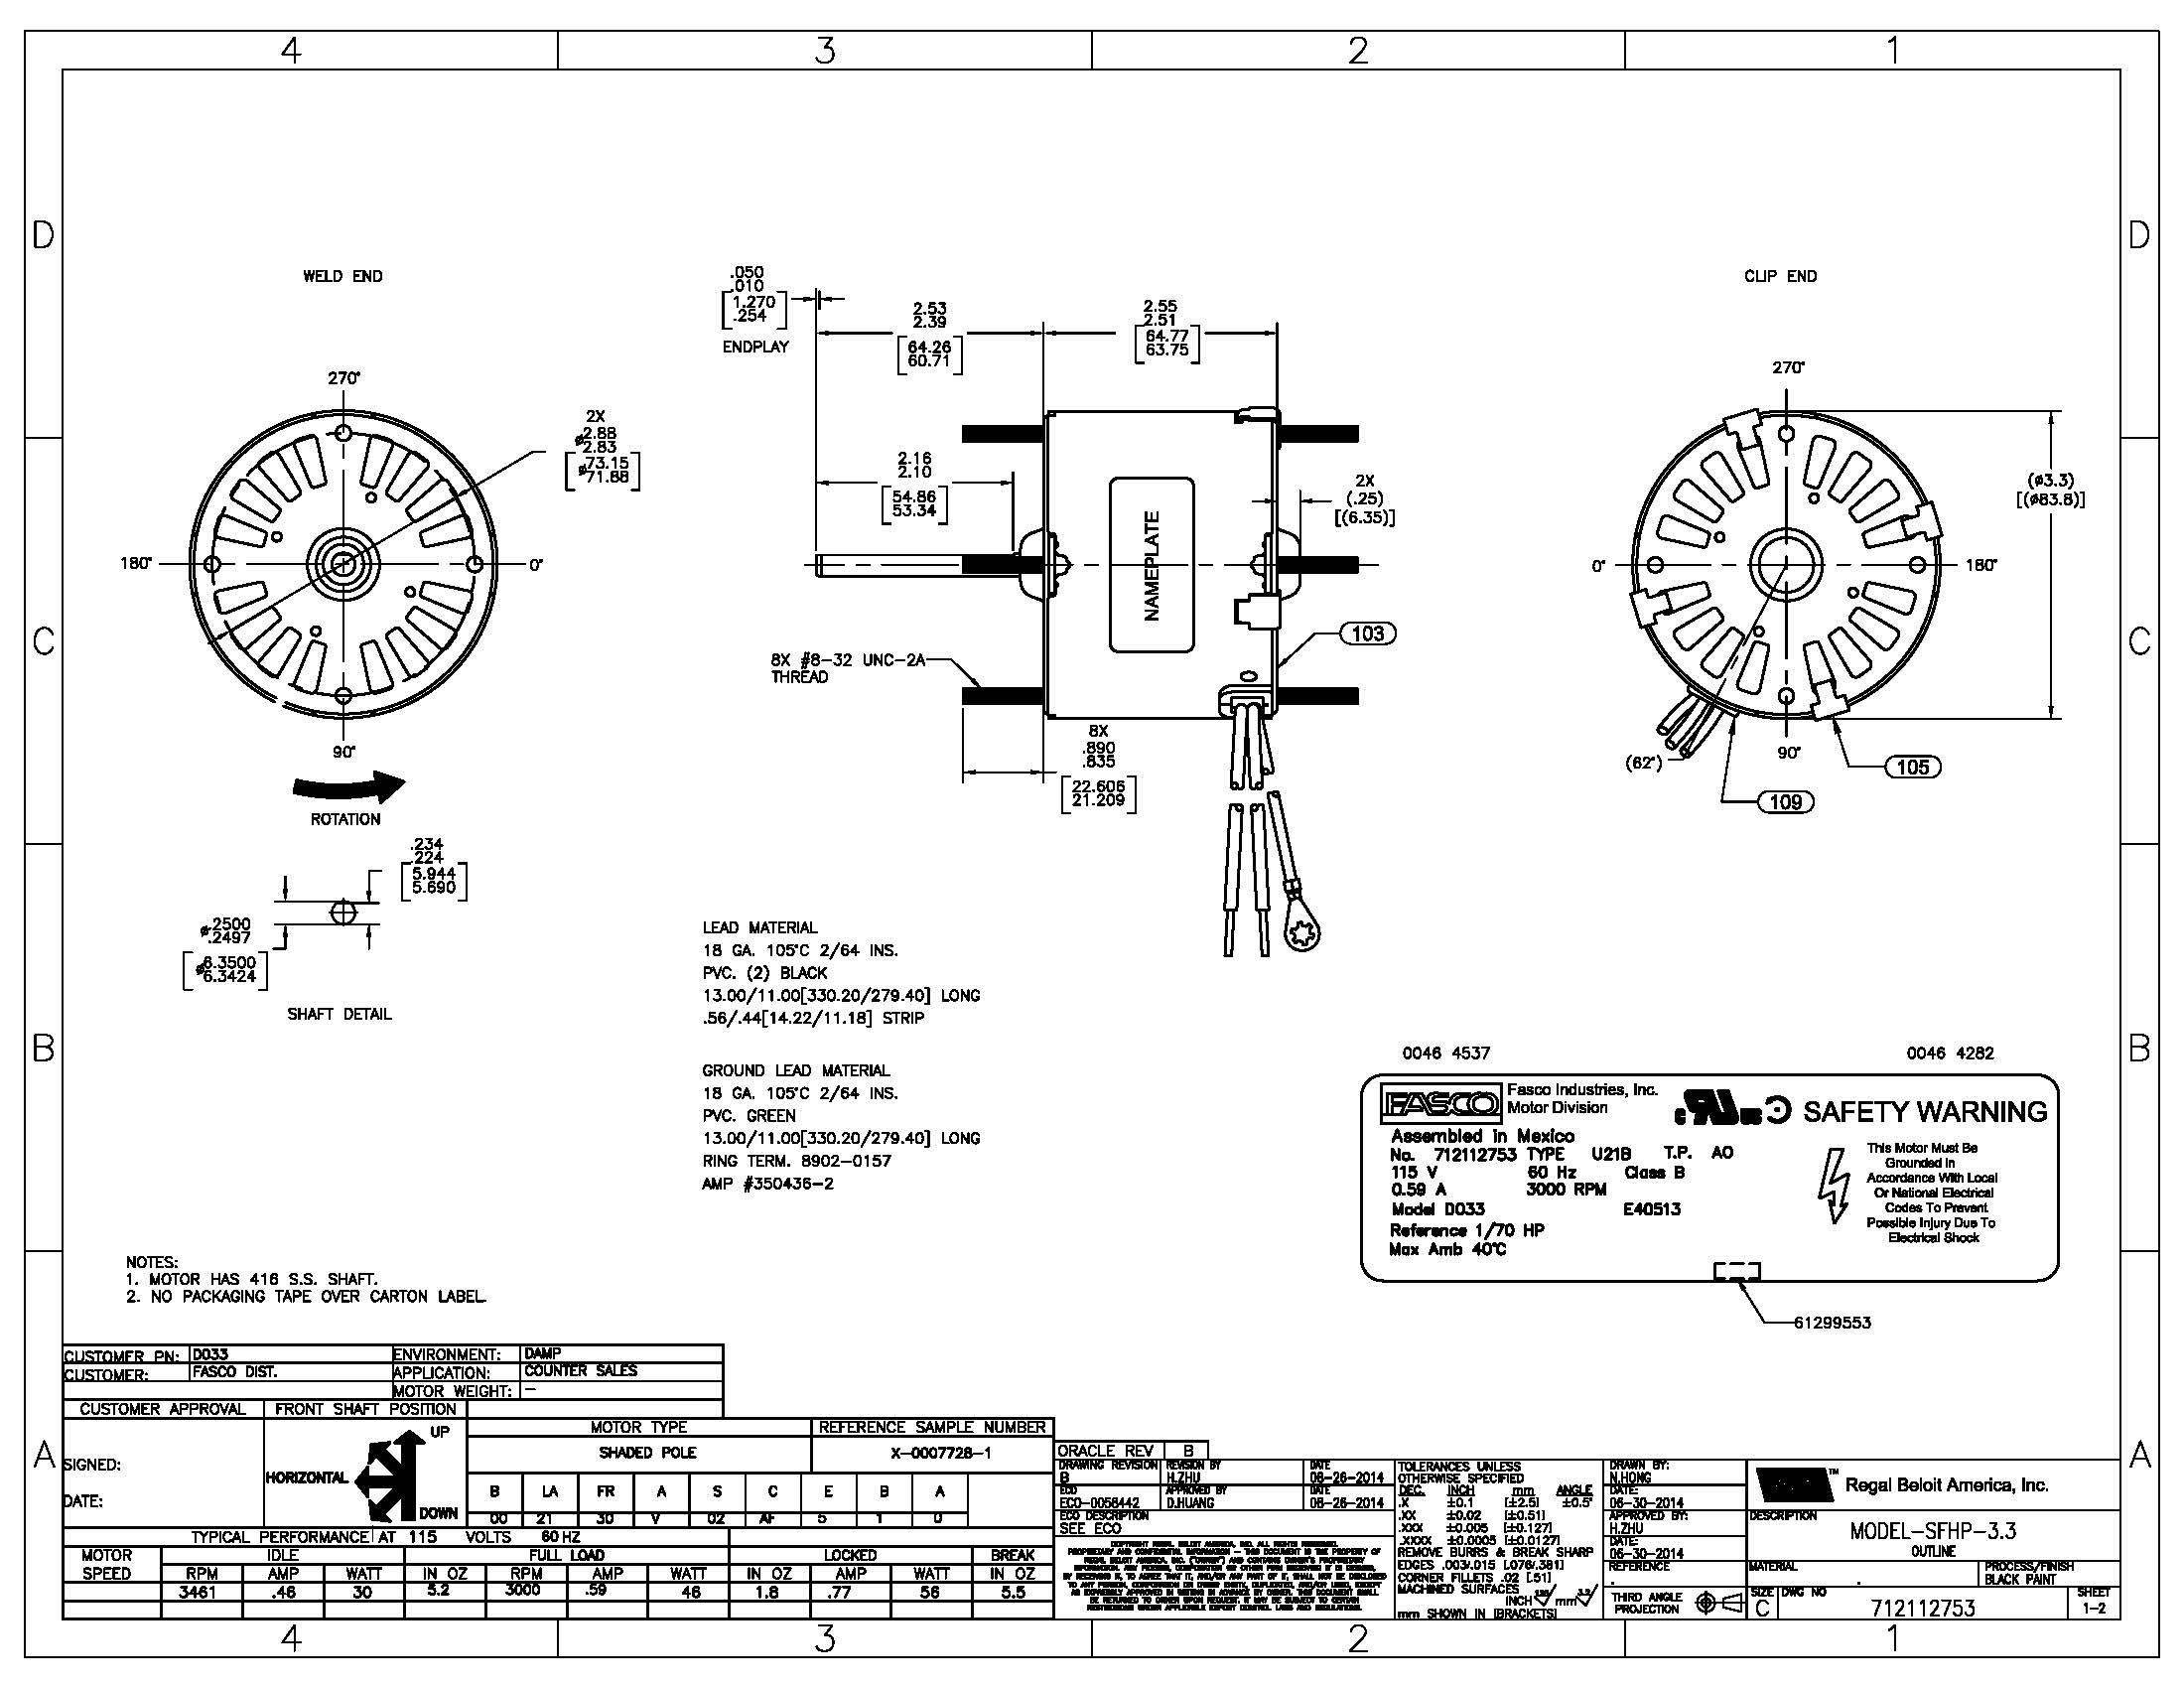 Psc Motor Wiring Diagram from wholefoodsonabudget.com